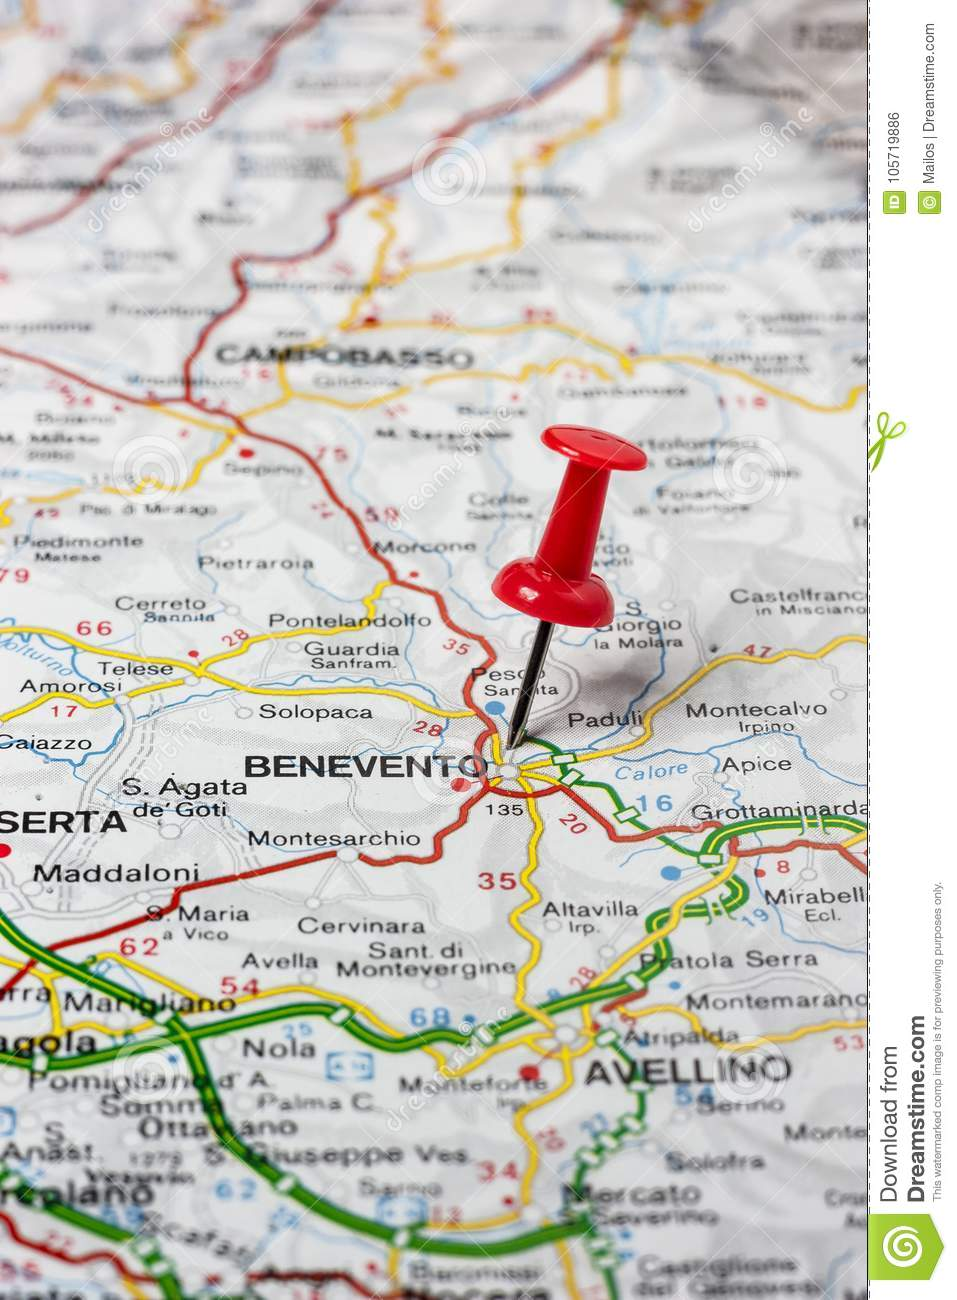 Benevento Pinned On A Map Of Italy Stock Photo - Image of city ...